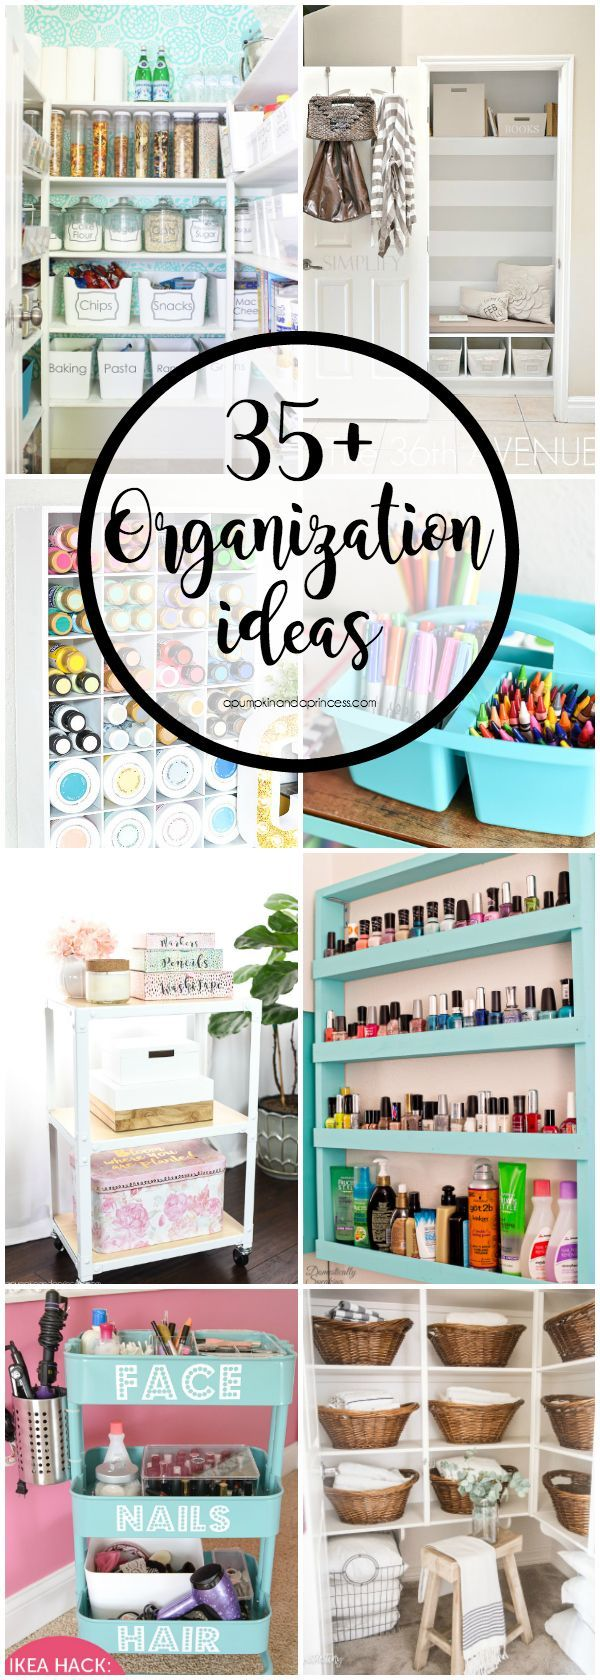 Best 25 desk organization tips ideas on pinterest diy for Office organization tips and ideas